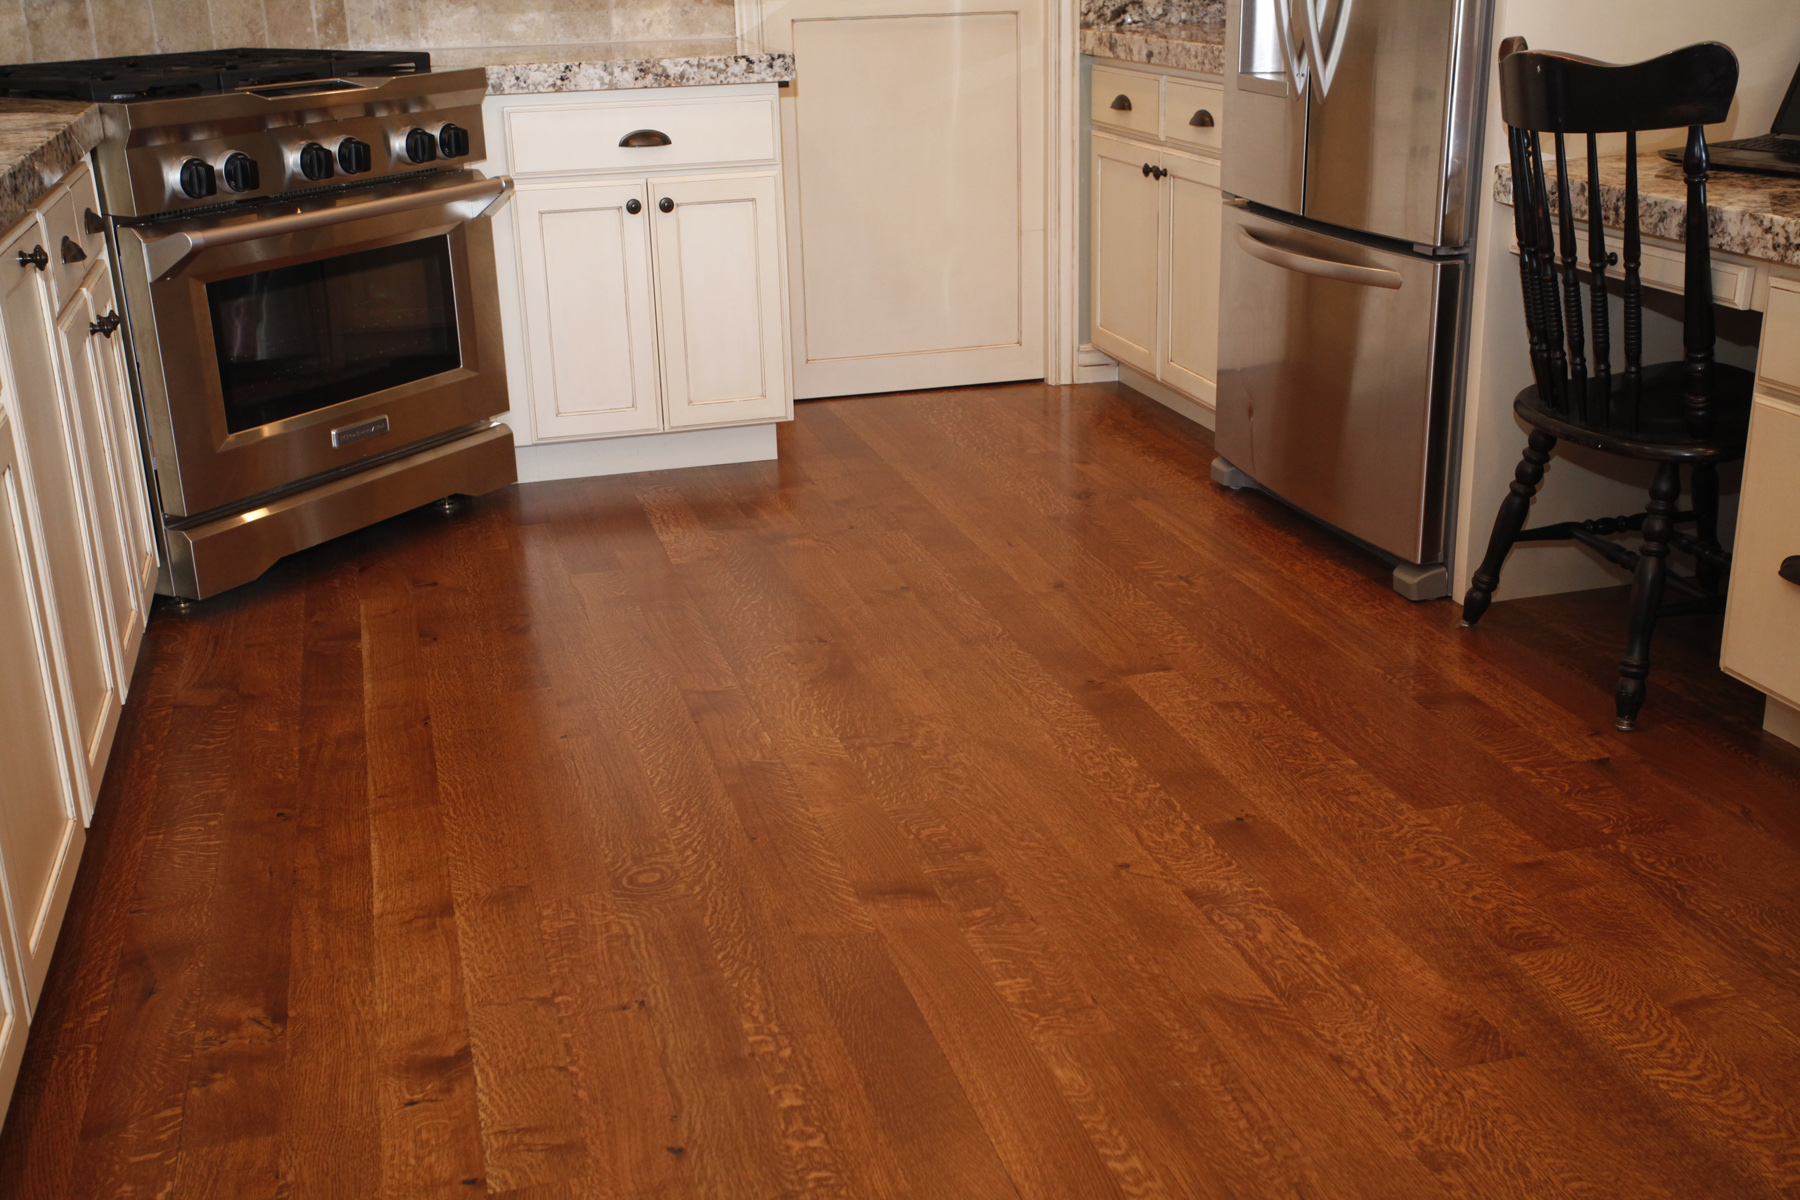 Wooden Floors For Kitchens Gallery